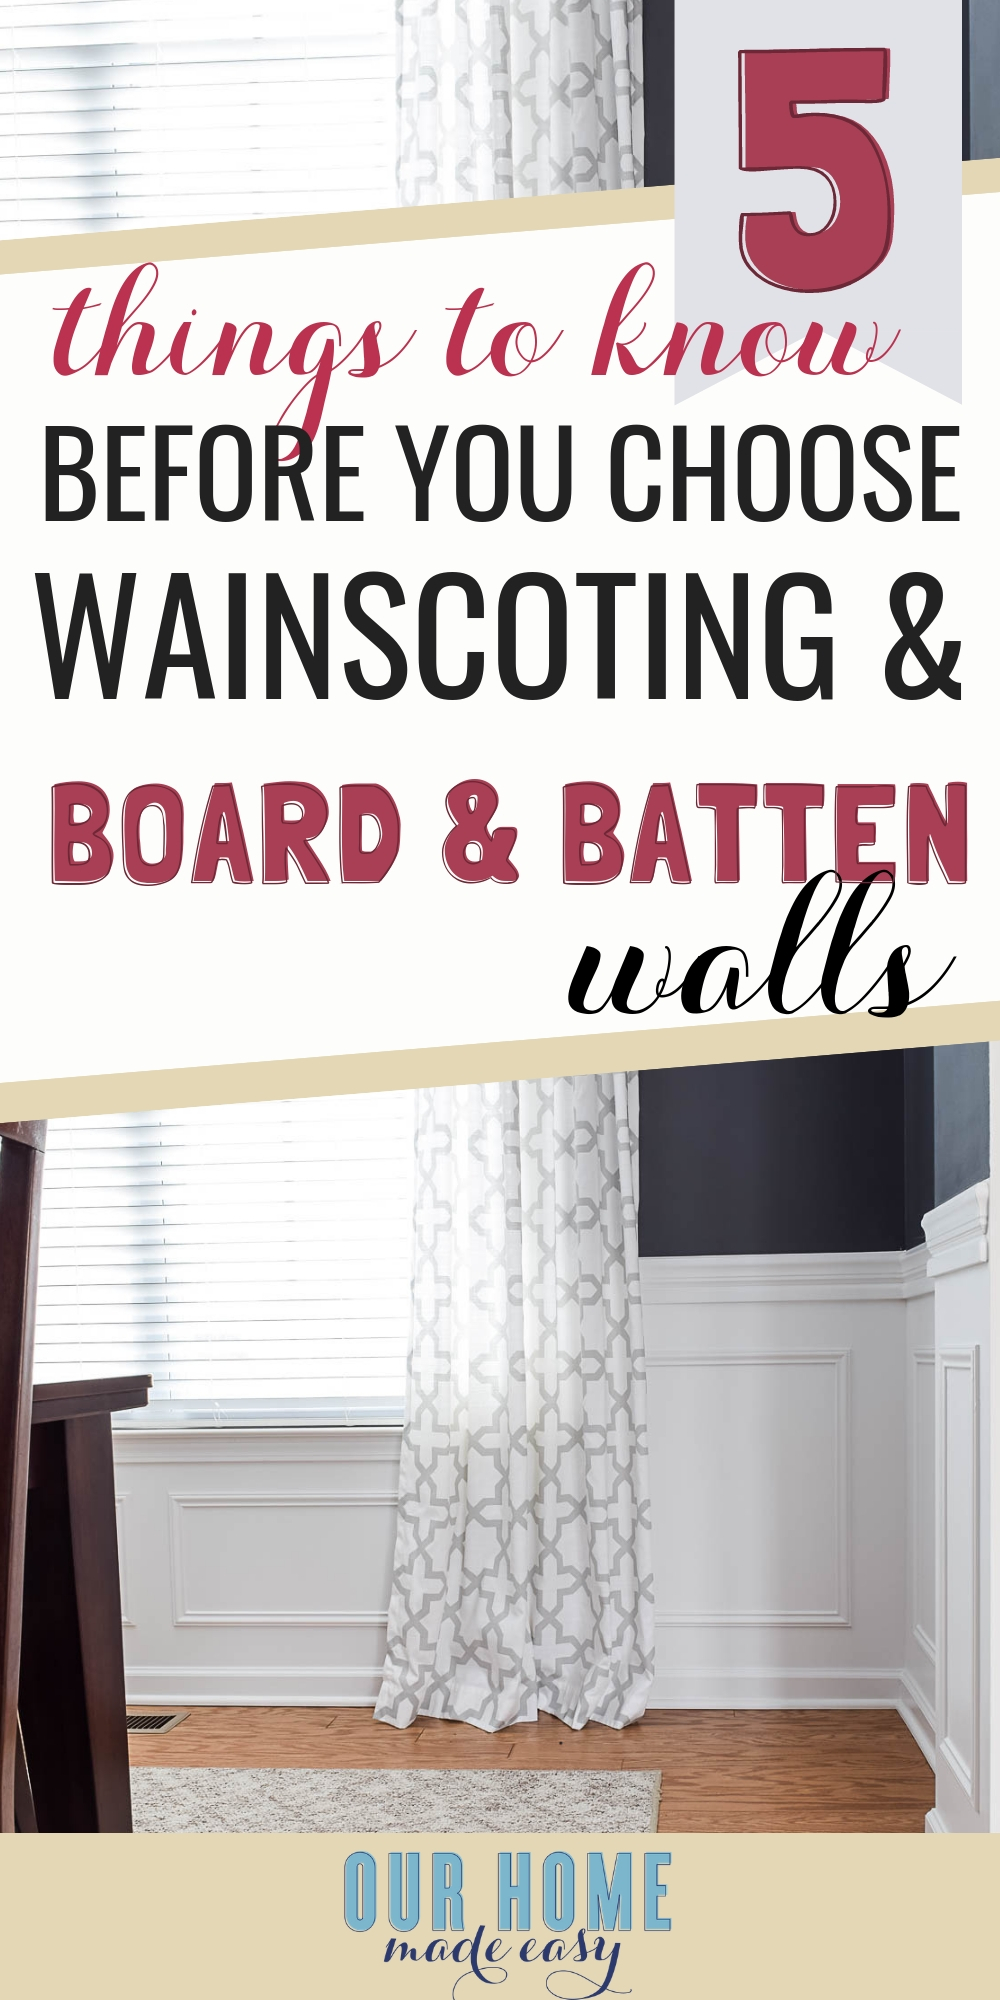 Comparing traditional wainscoting and board & batten